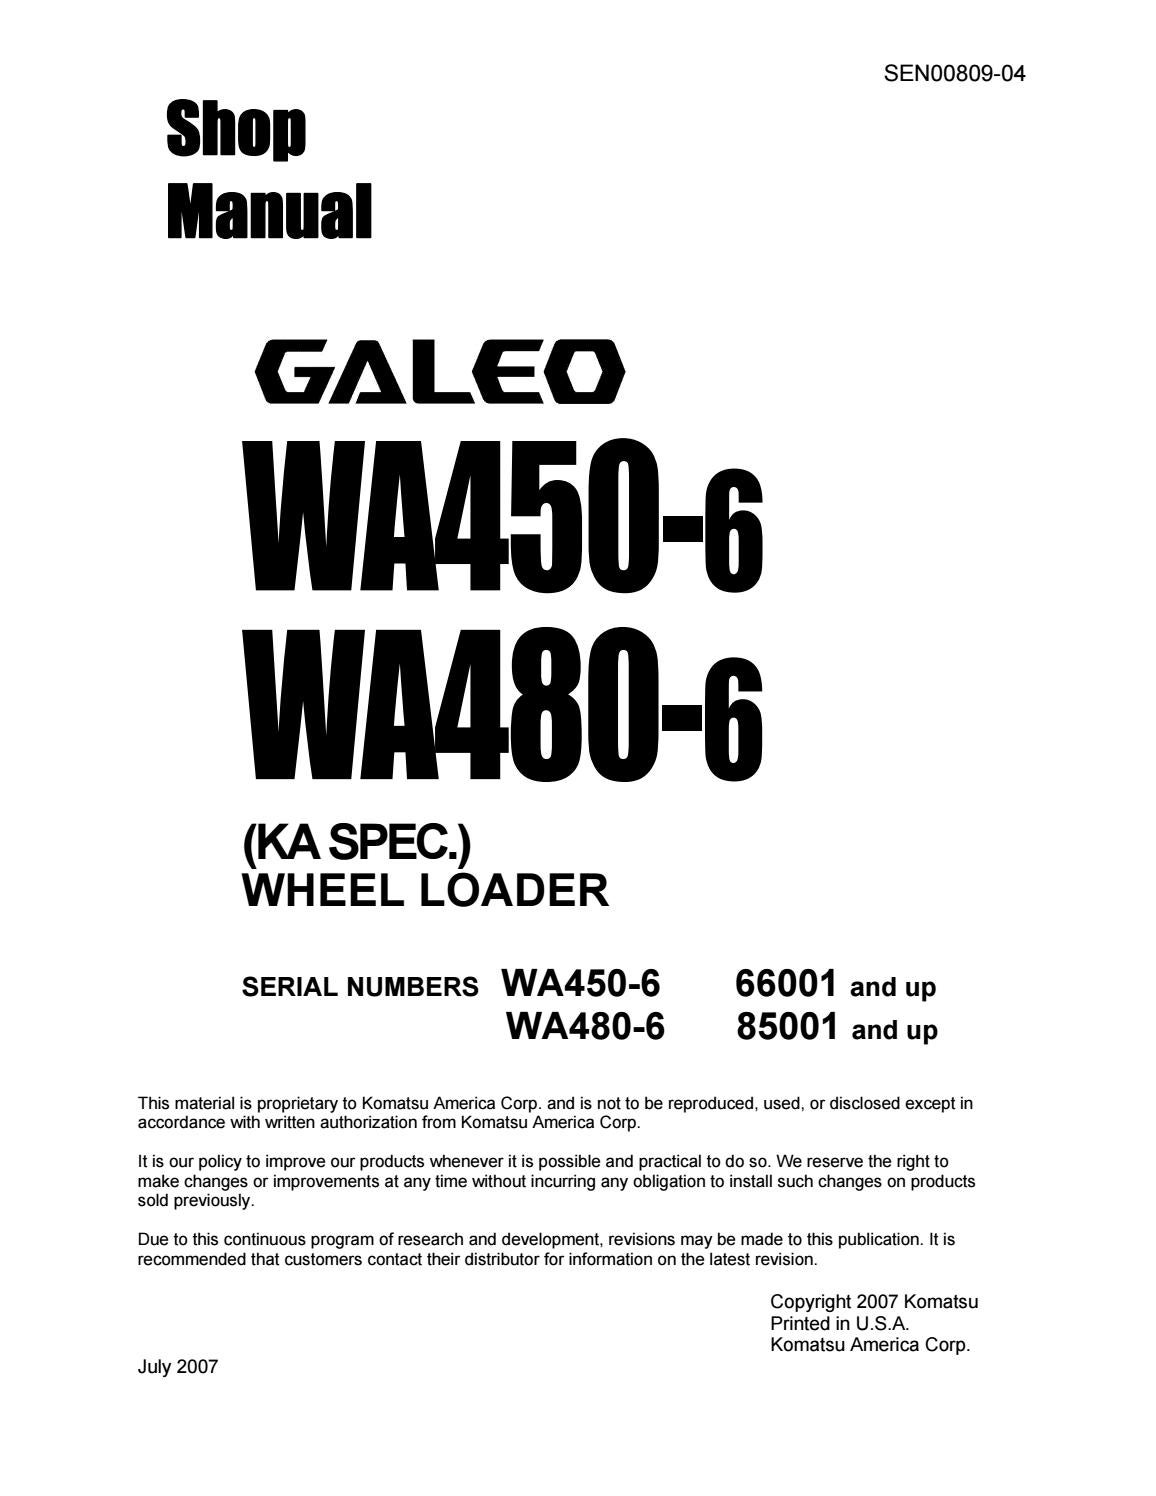 Komatsu Wa480 6 Galeo Wheel Loader Service Repair Manual Sn85001 25 Forklift Light Wiring Diagram And Up By 163101 Issuu